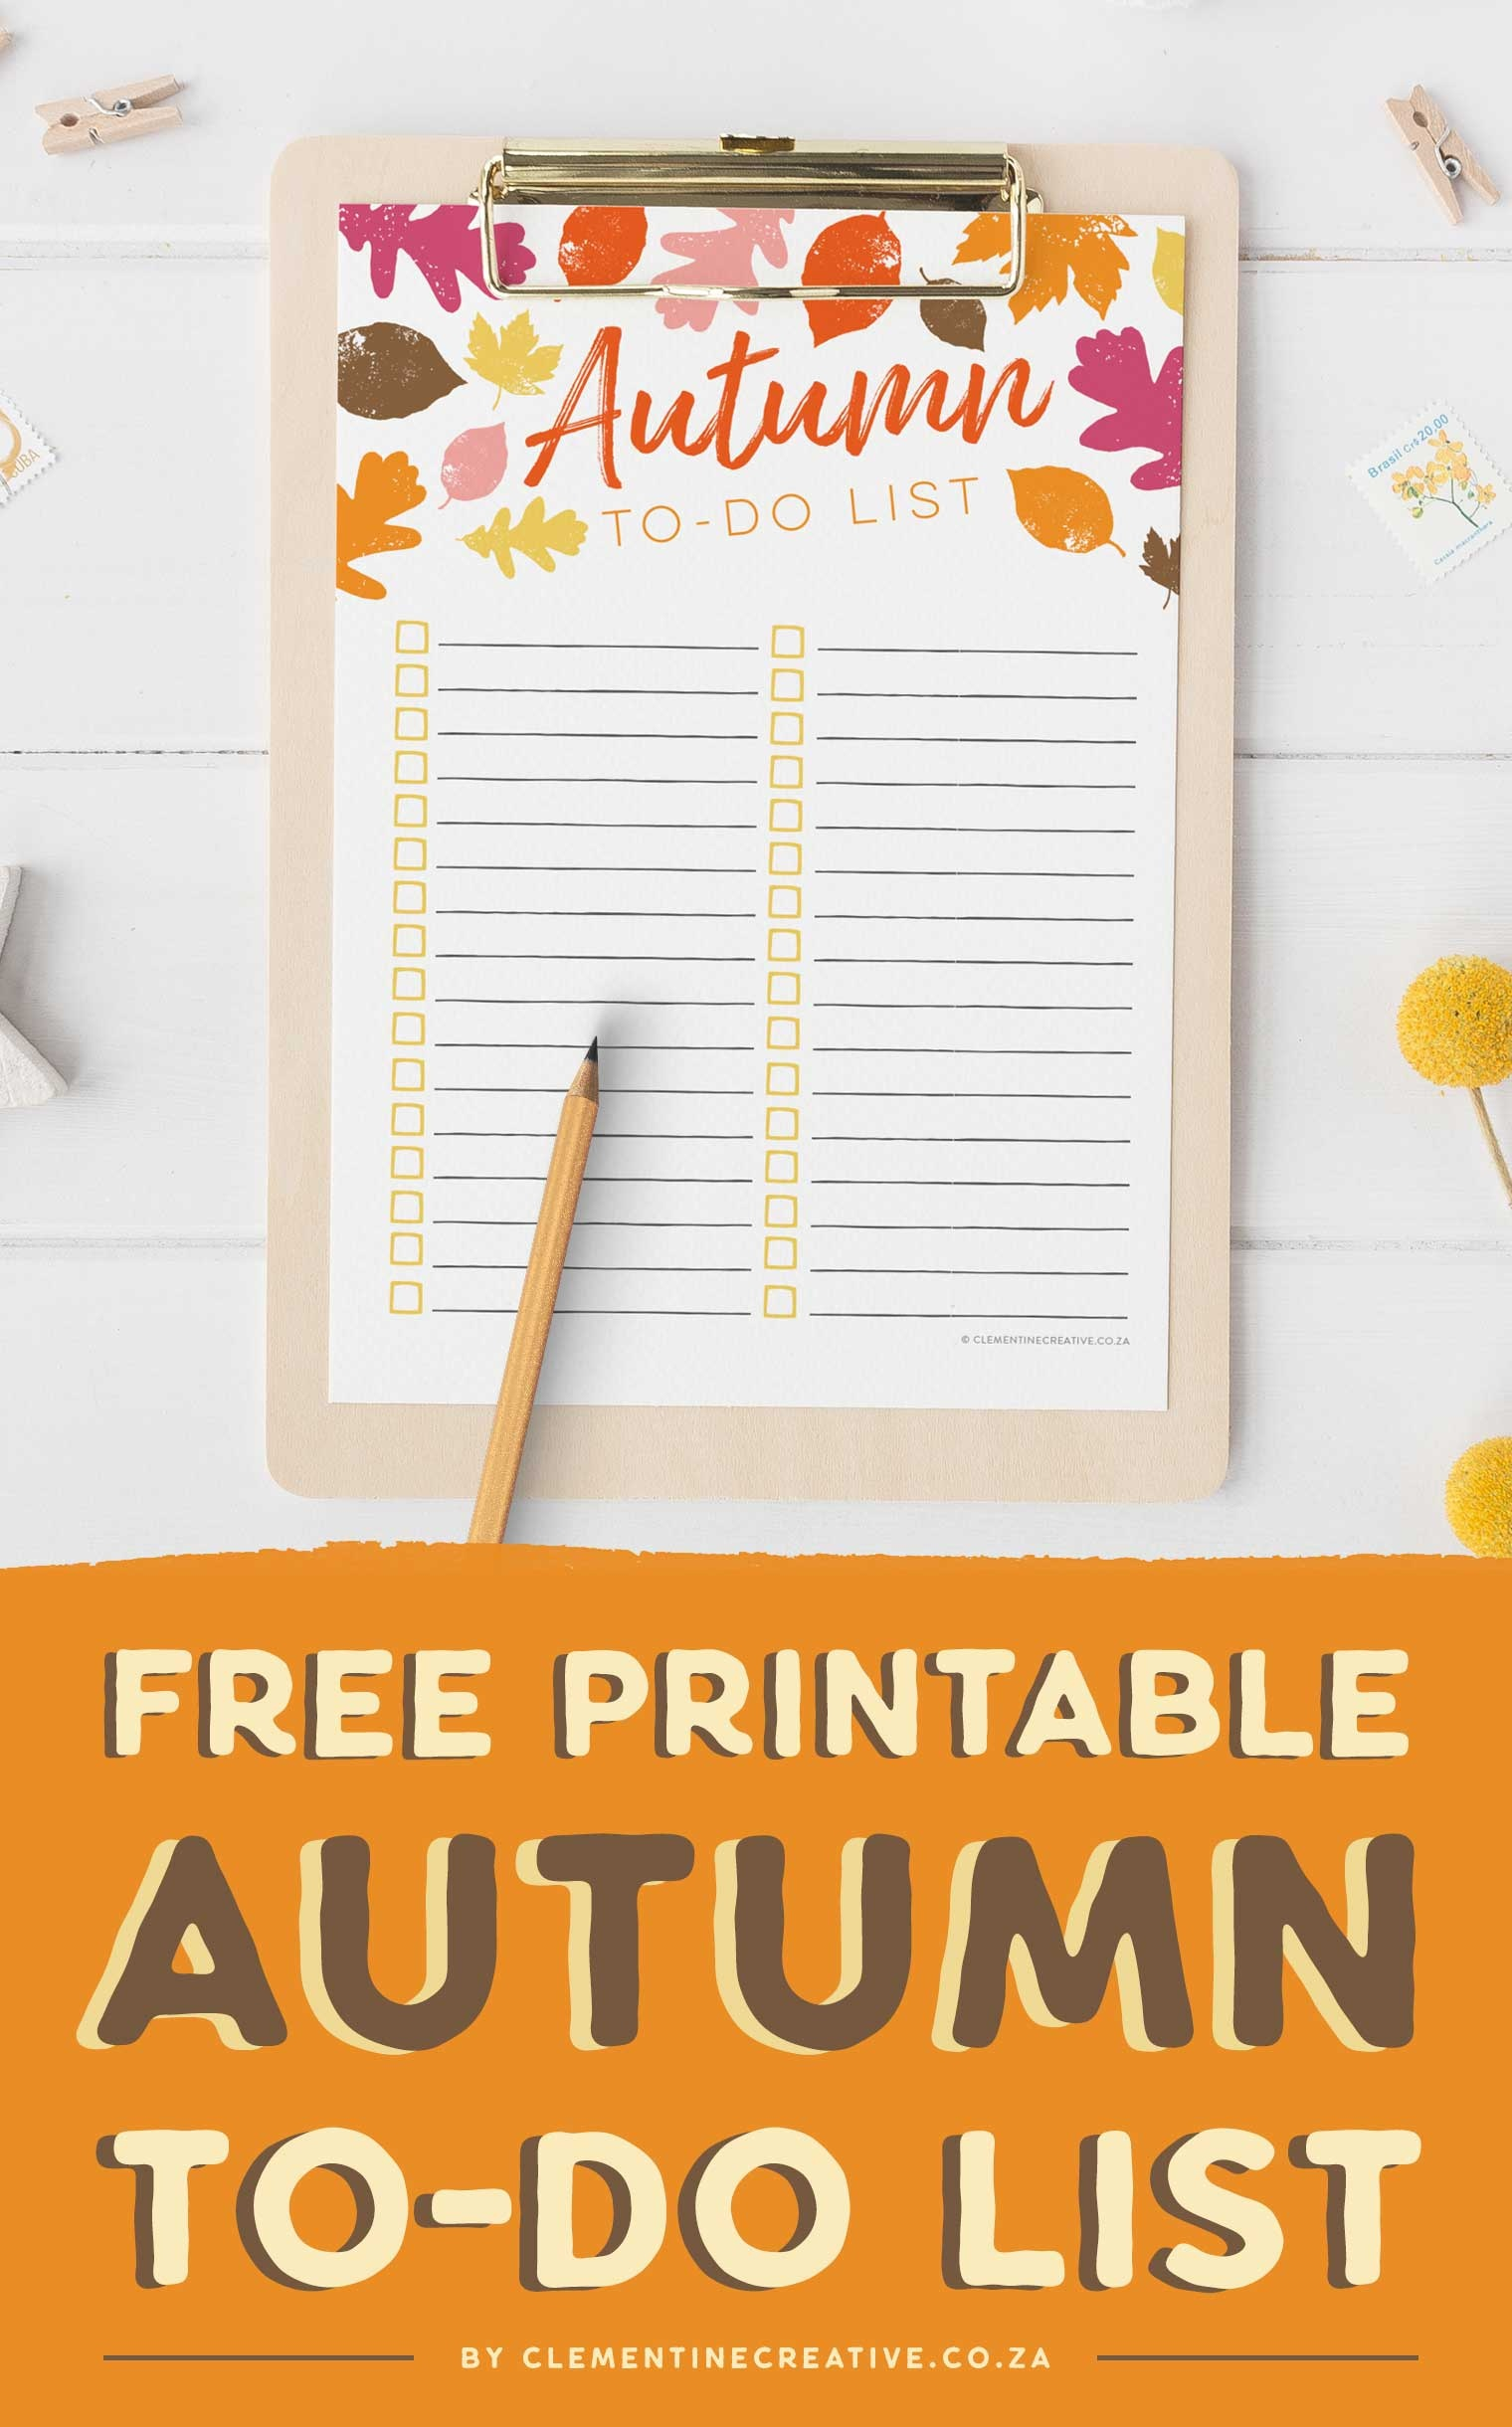 Free Printable Autumn To-Do List - Get Excited For Fall! - Free Printable Autumn Paper